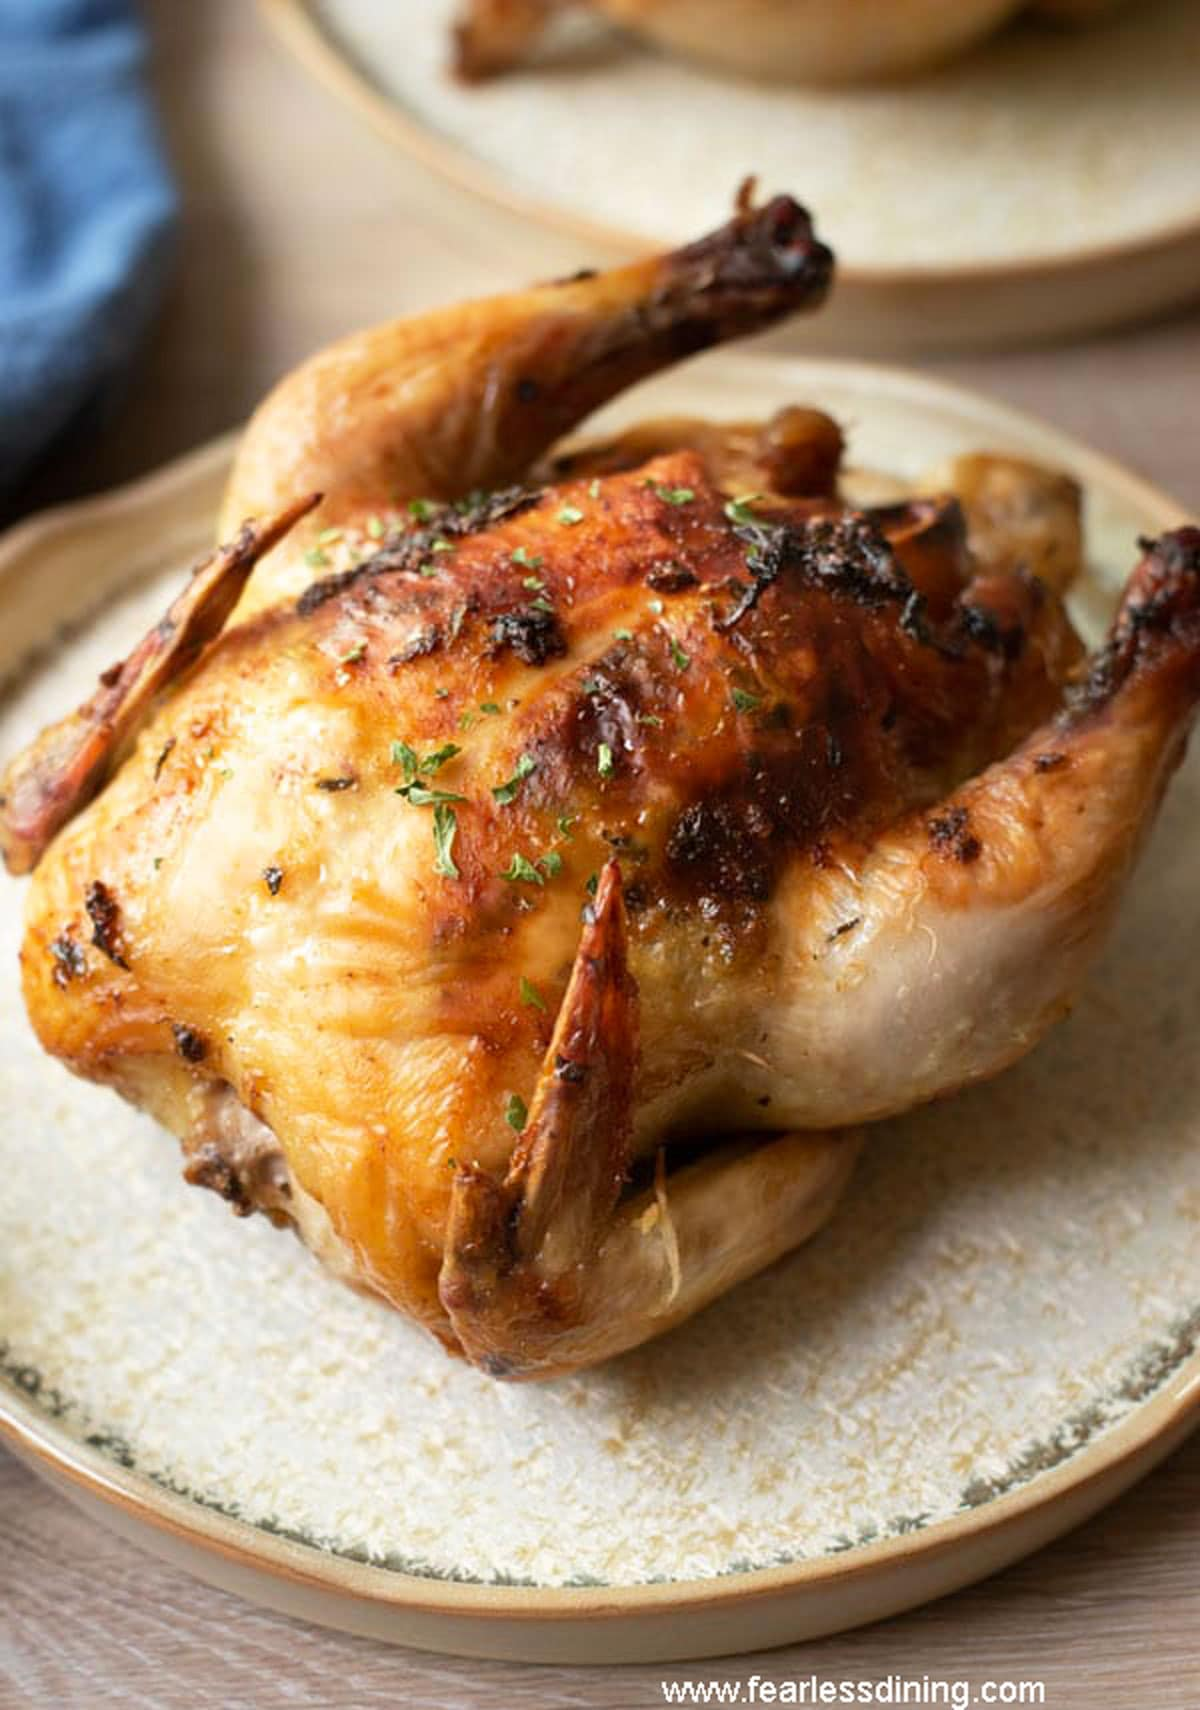 The front view of the air fried cornish game hen